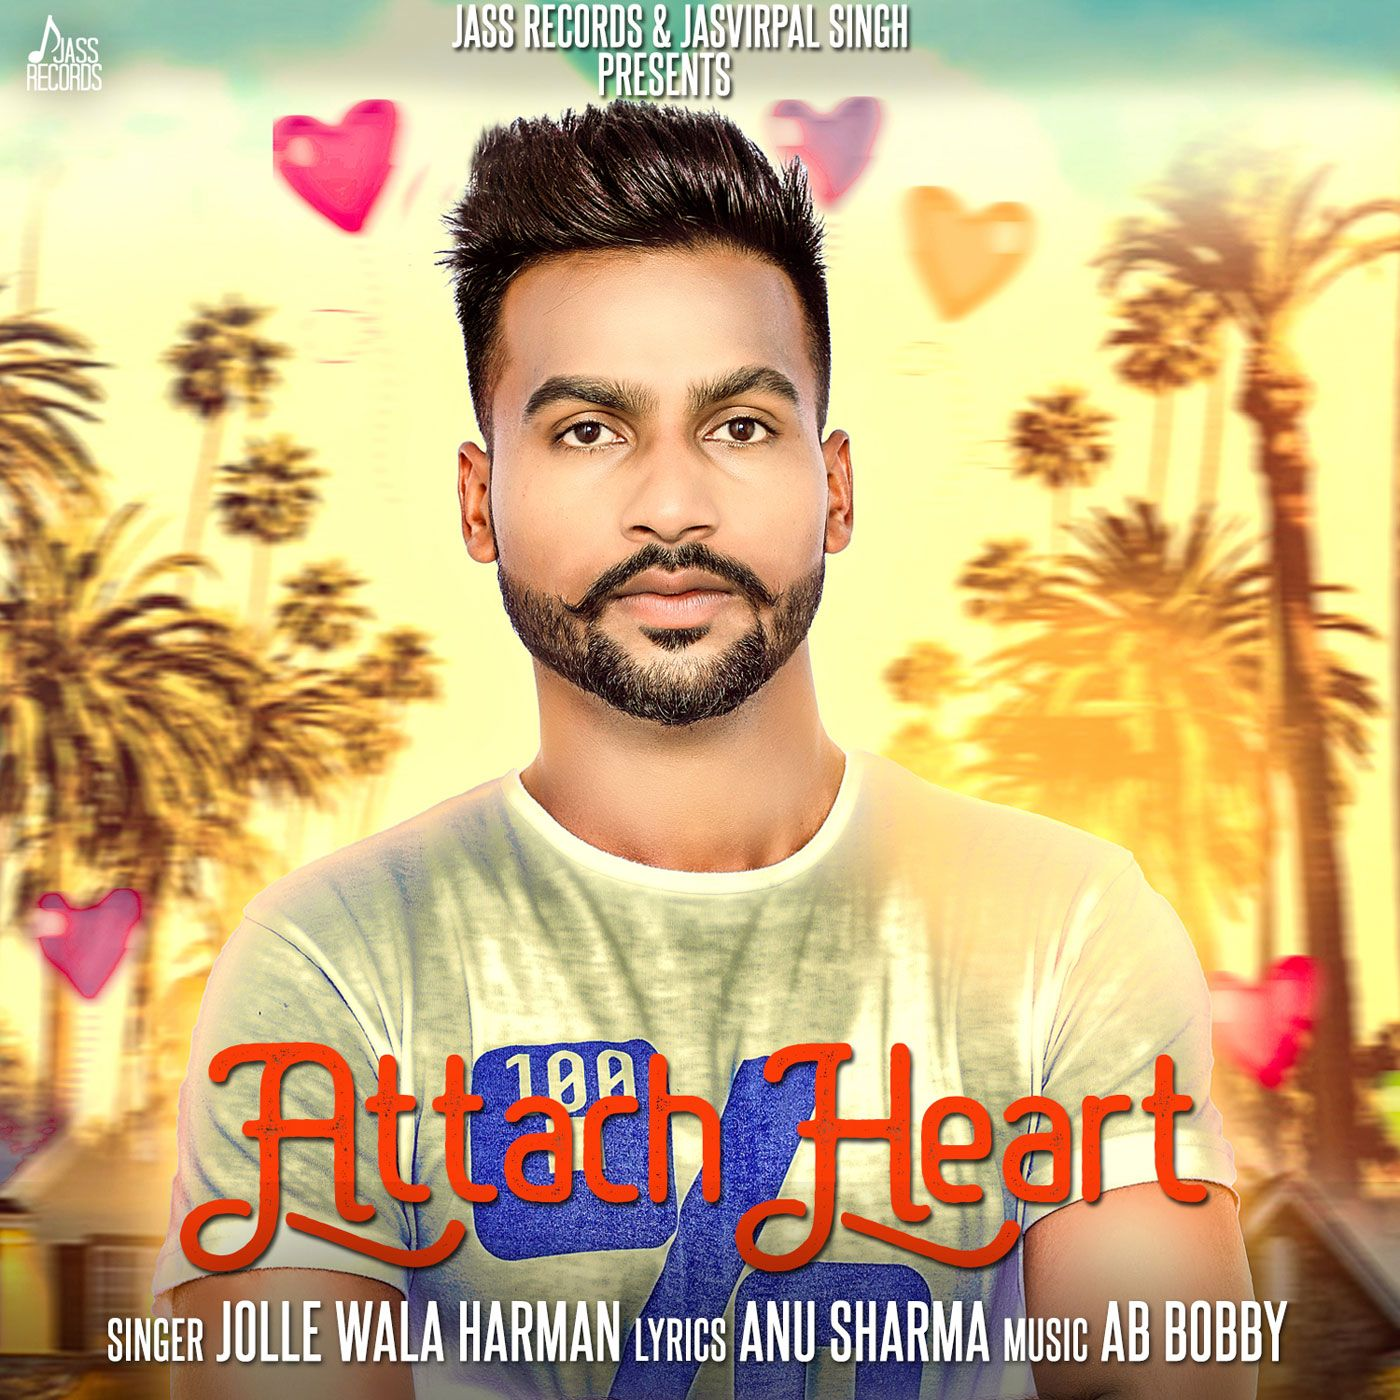 Attach Heart By Jolle Wala Harman Mp3 Song Download Songs Mp3 Song